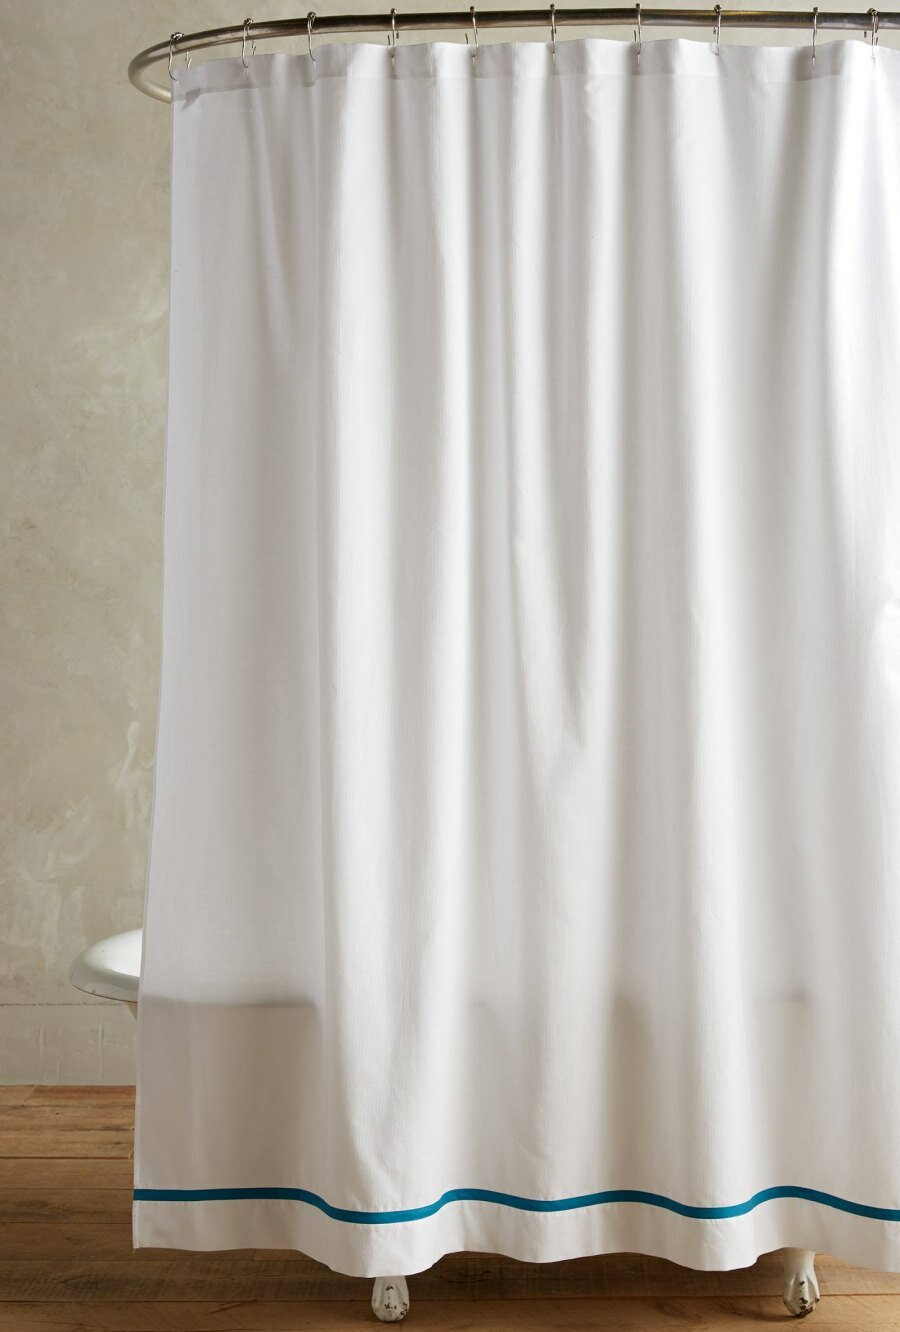 Interesting Bathroom Decor Ideas with Restoration Hardware Shower Curtain: Restoration Hardware Shower Curtain | Bathroom Curtain Rods | Restoration Hardware Drapes